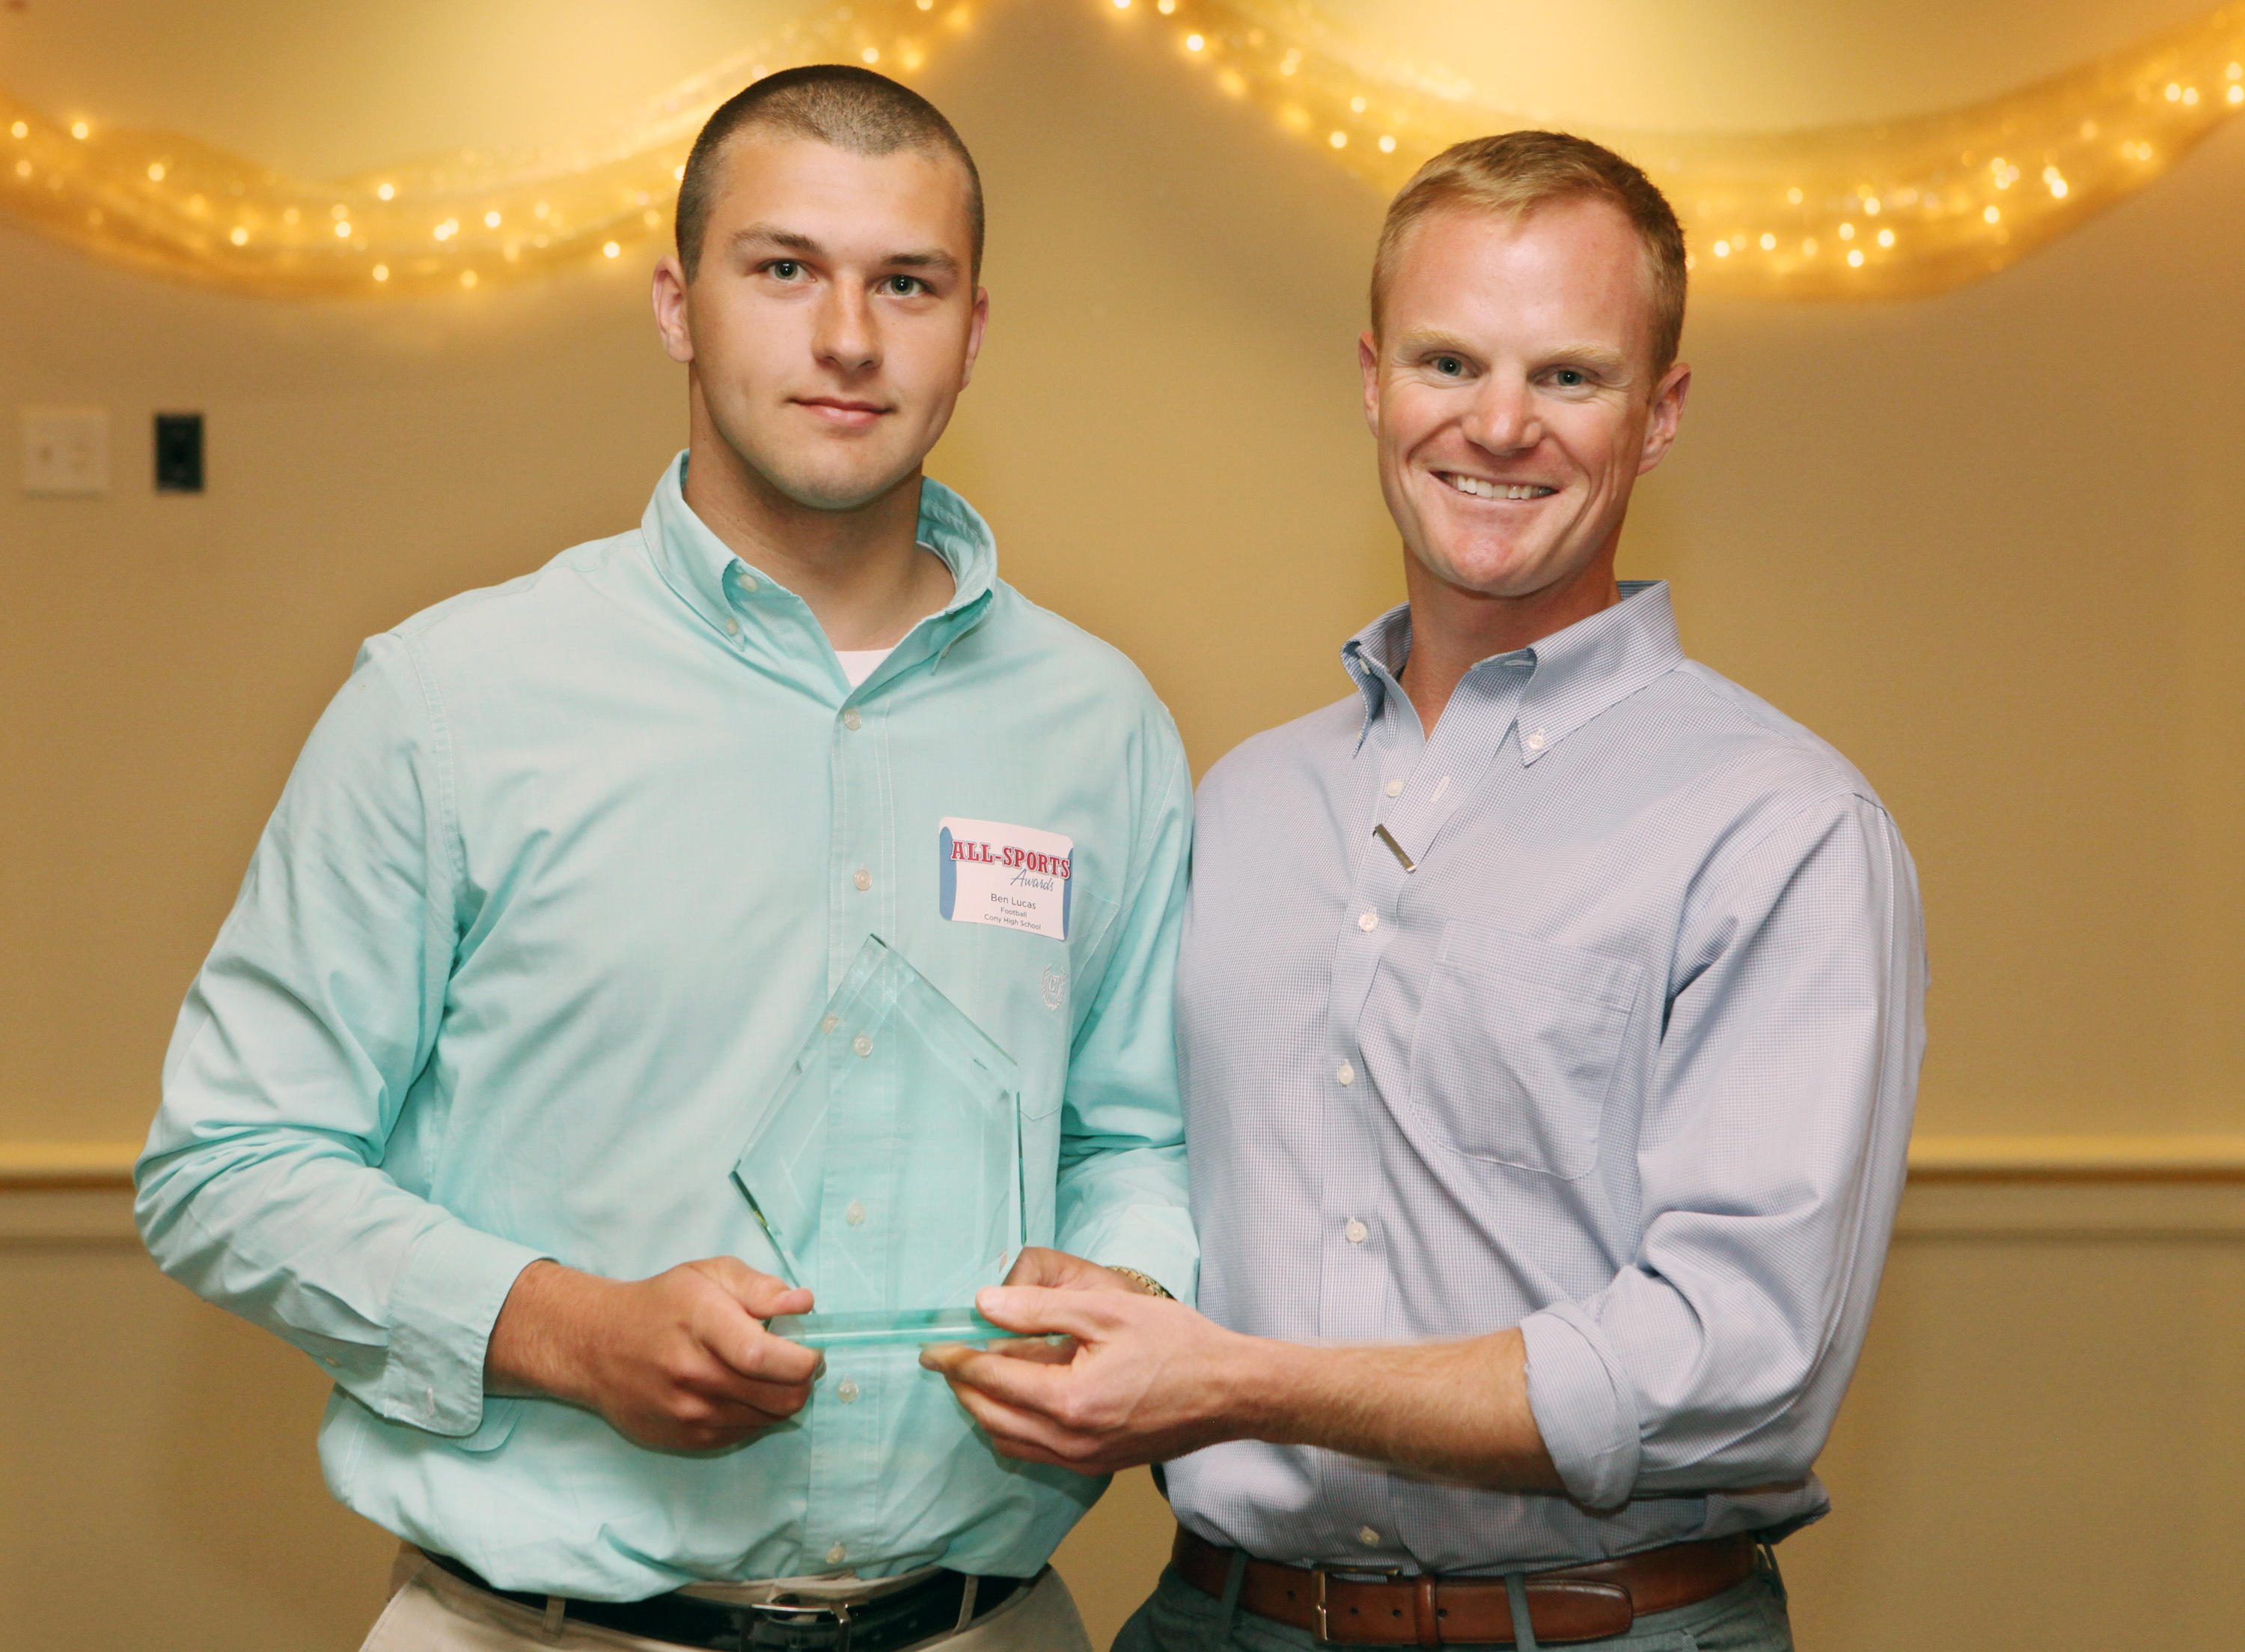 Athletes of the Year Ben Lucas of Cony High School poses with former major league baseball player Simon Williams during at the 27th Annual All-Sports Awards ceremony Sunday. Joel Page/Staff Photographer